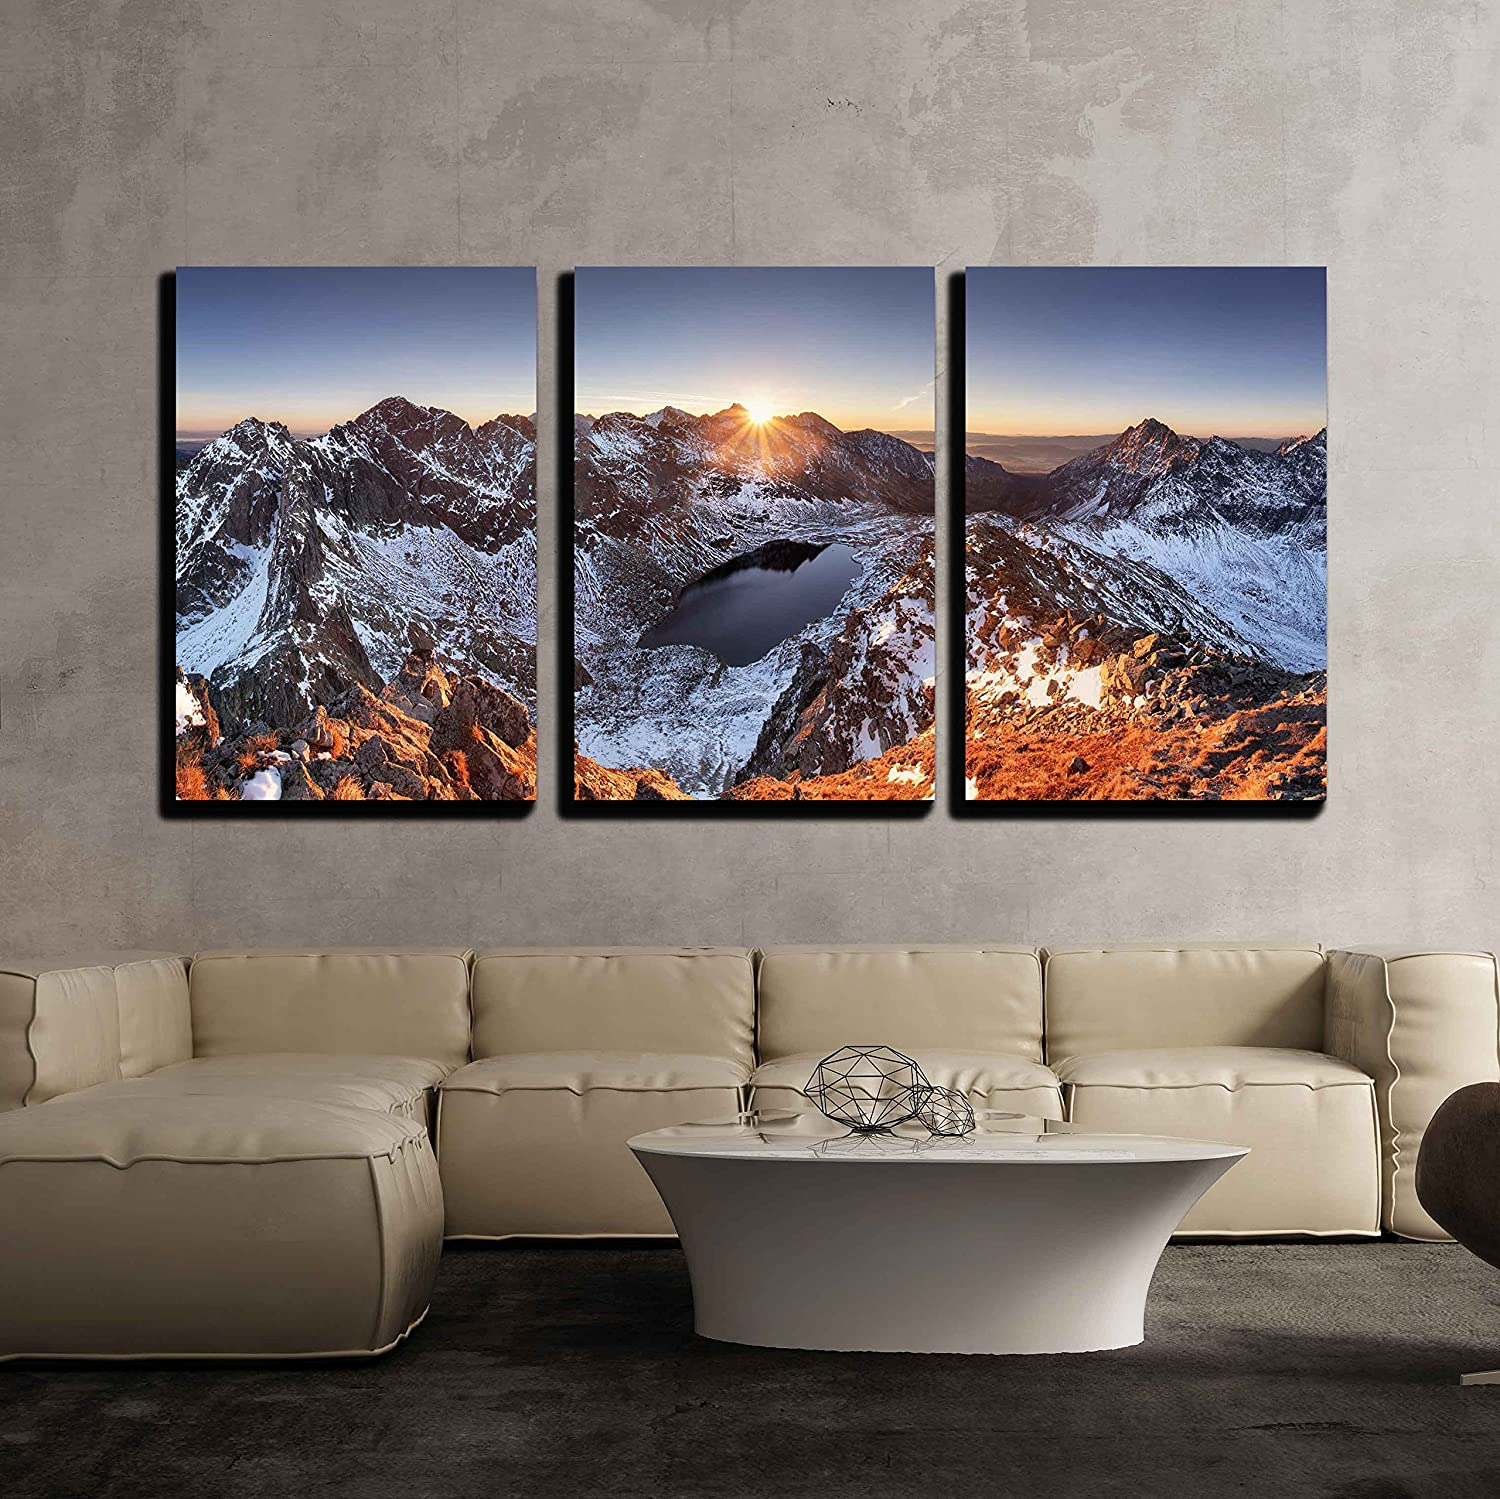 Amazon Com Wall26 3 Piece Canvas Wall Art Mountain Panorama At Winter Fall In Slovakia Tatras Modern Home Art Stretched And Framed Ready To Hang 16 X24 X3 Panels Posters Prints